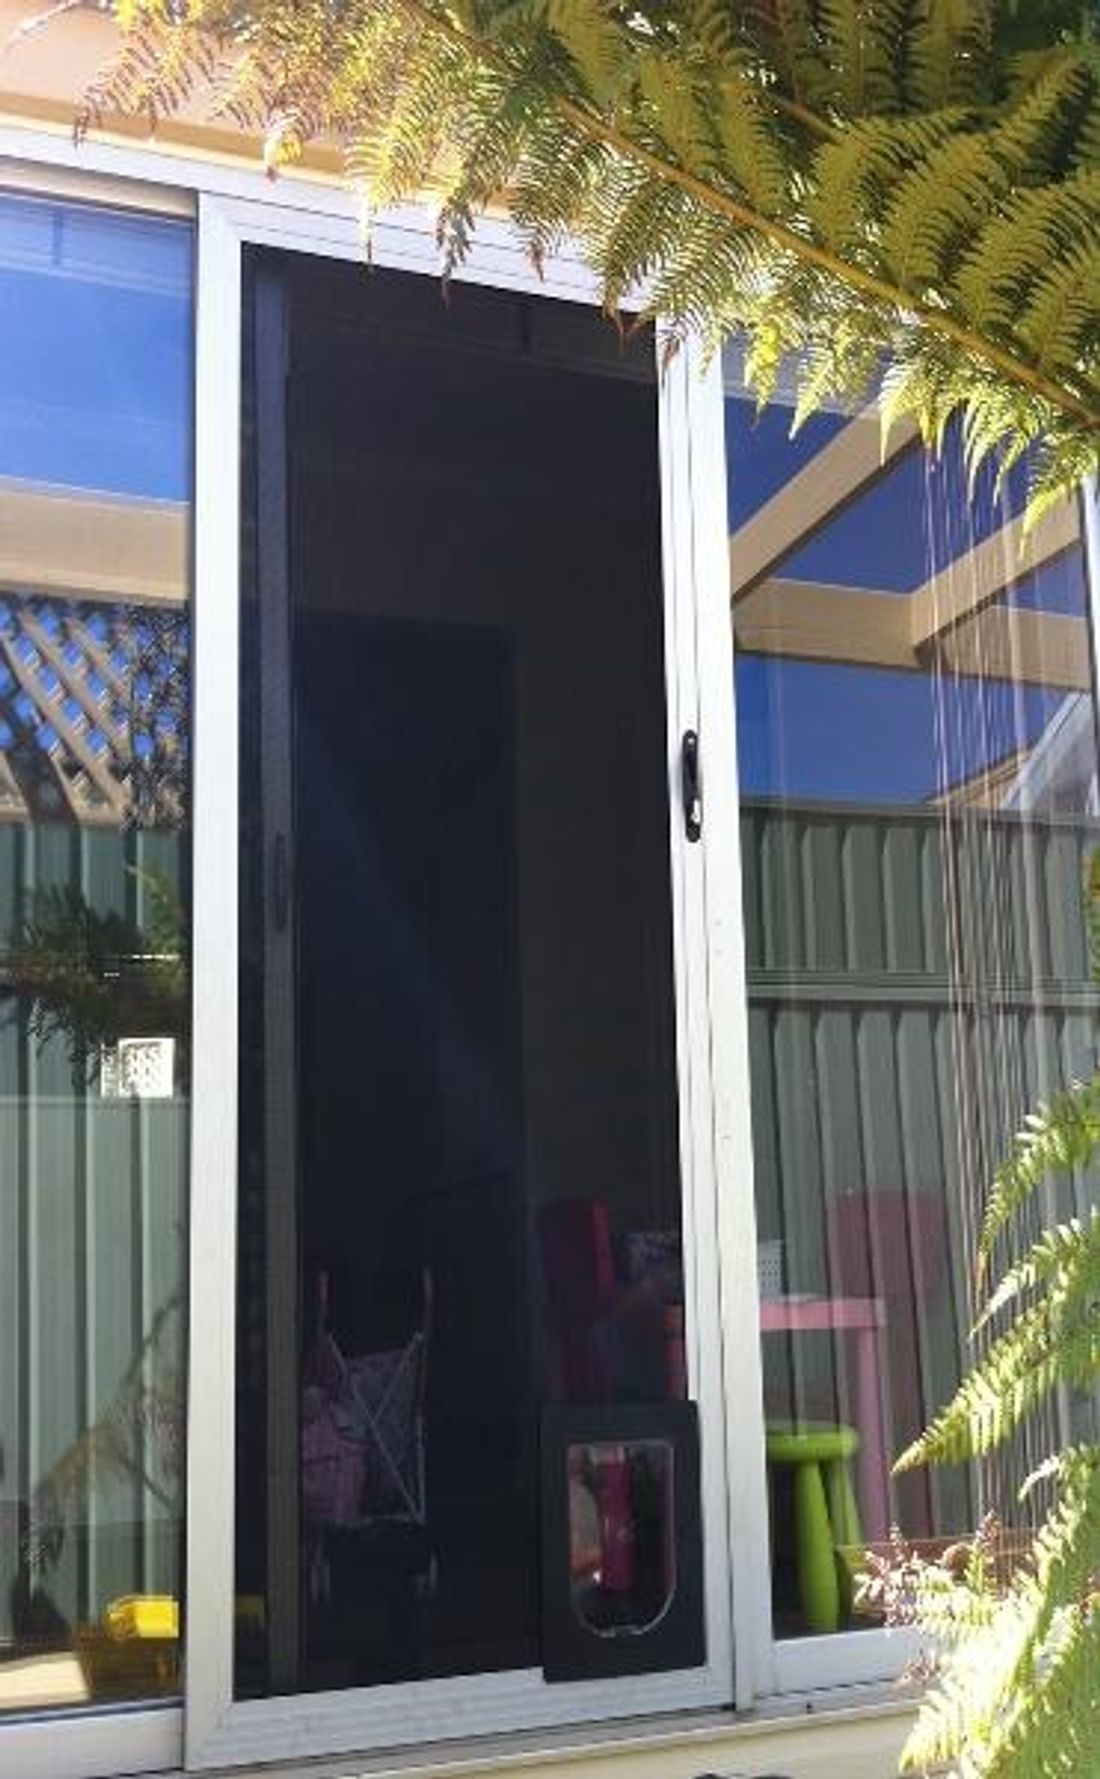 How To Build A Doggie Door For A Sliding Door Hipages Com Au